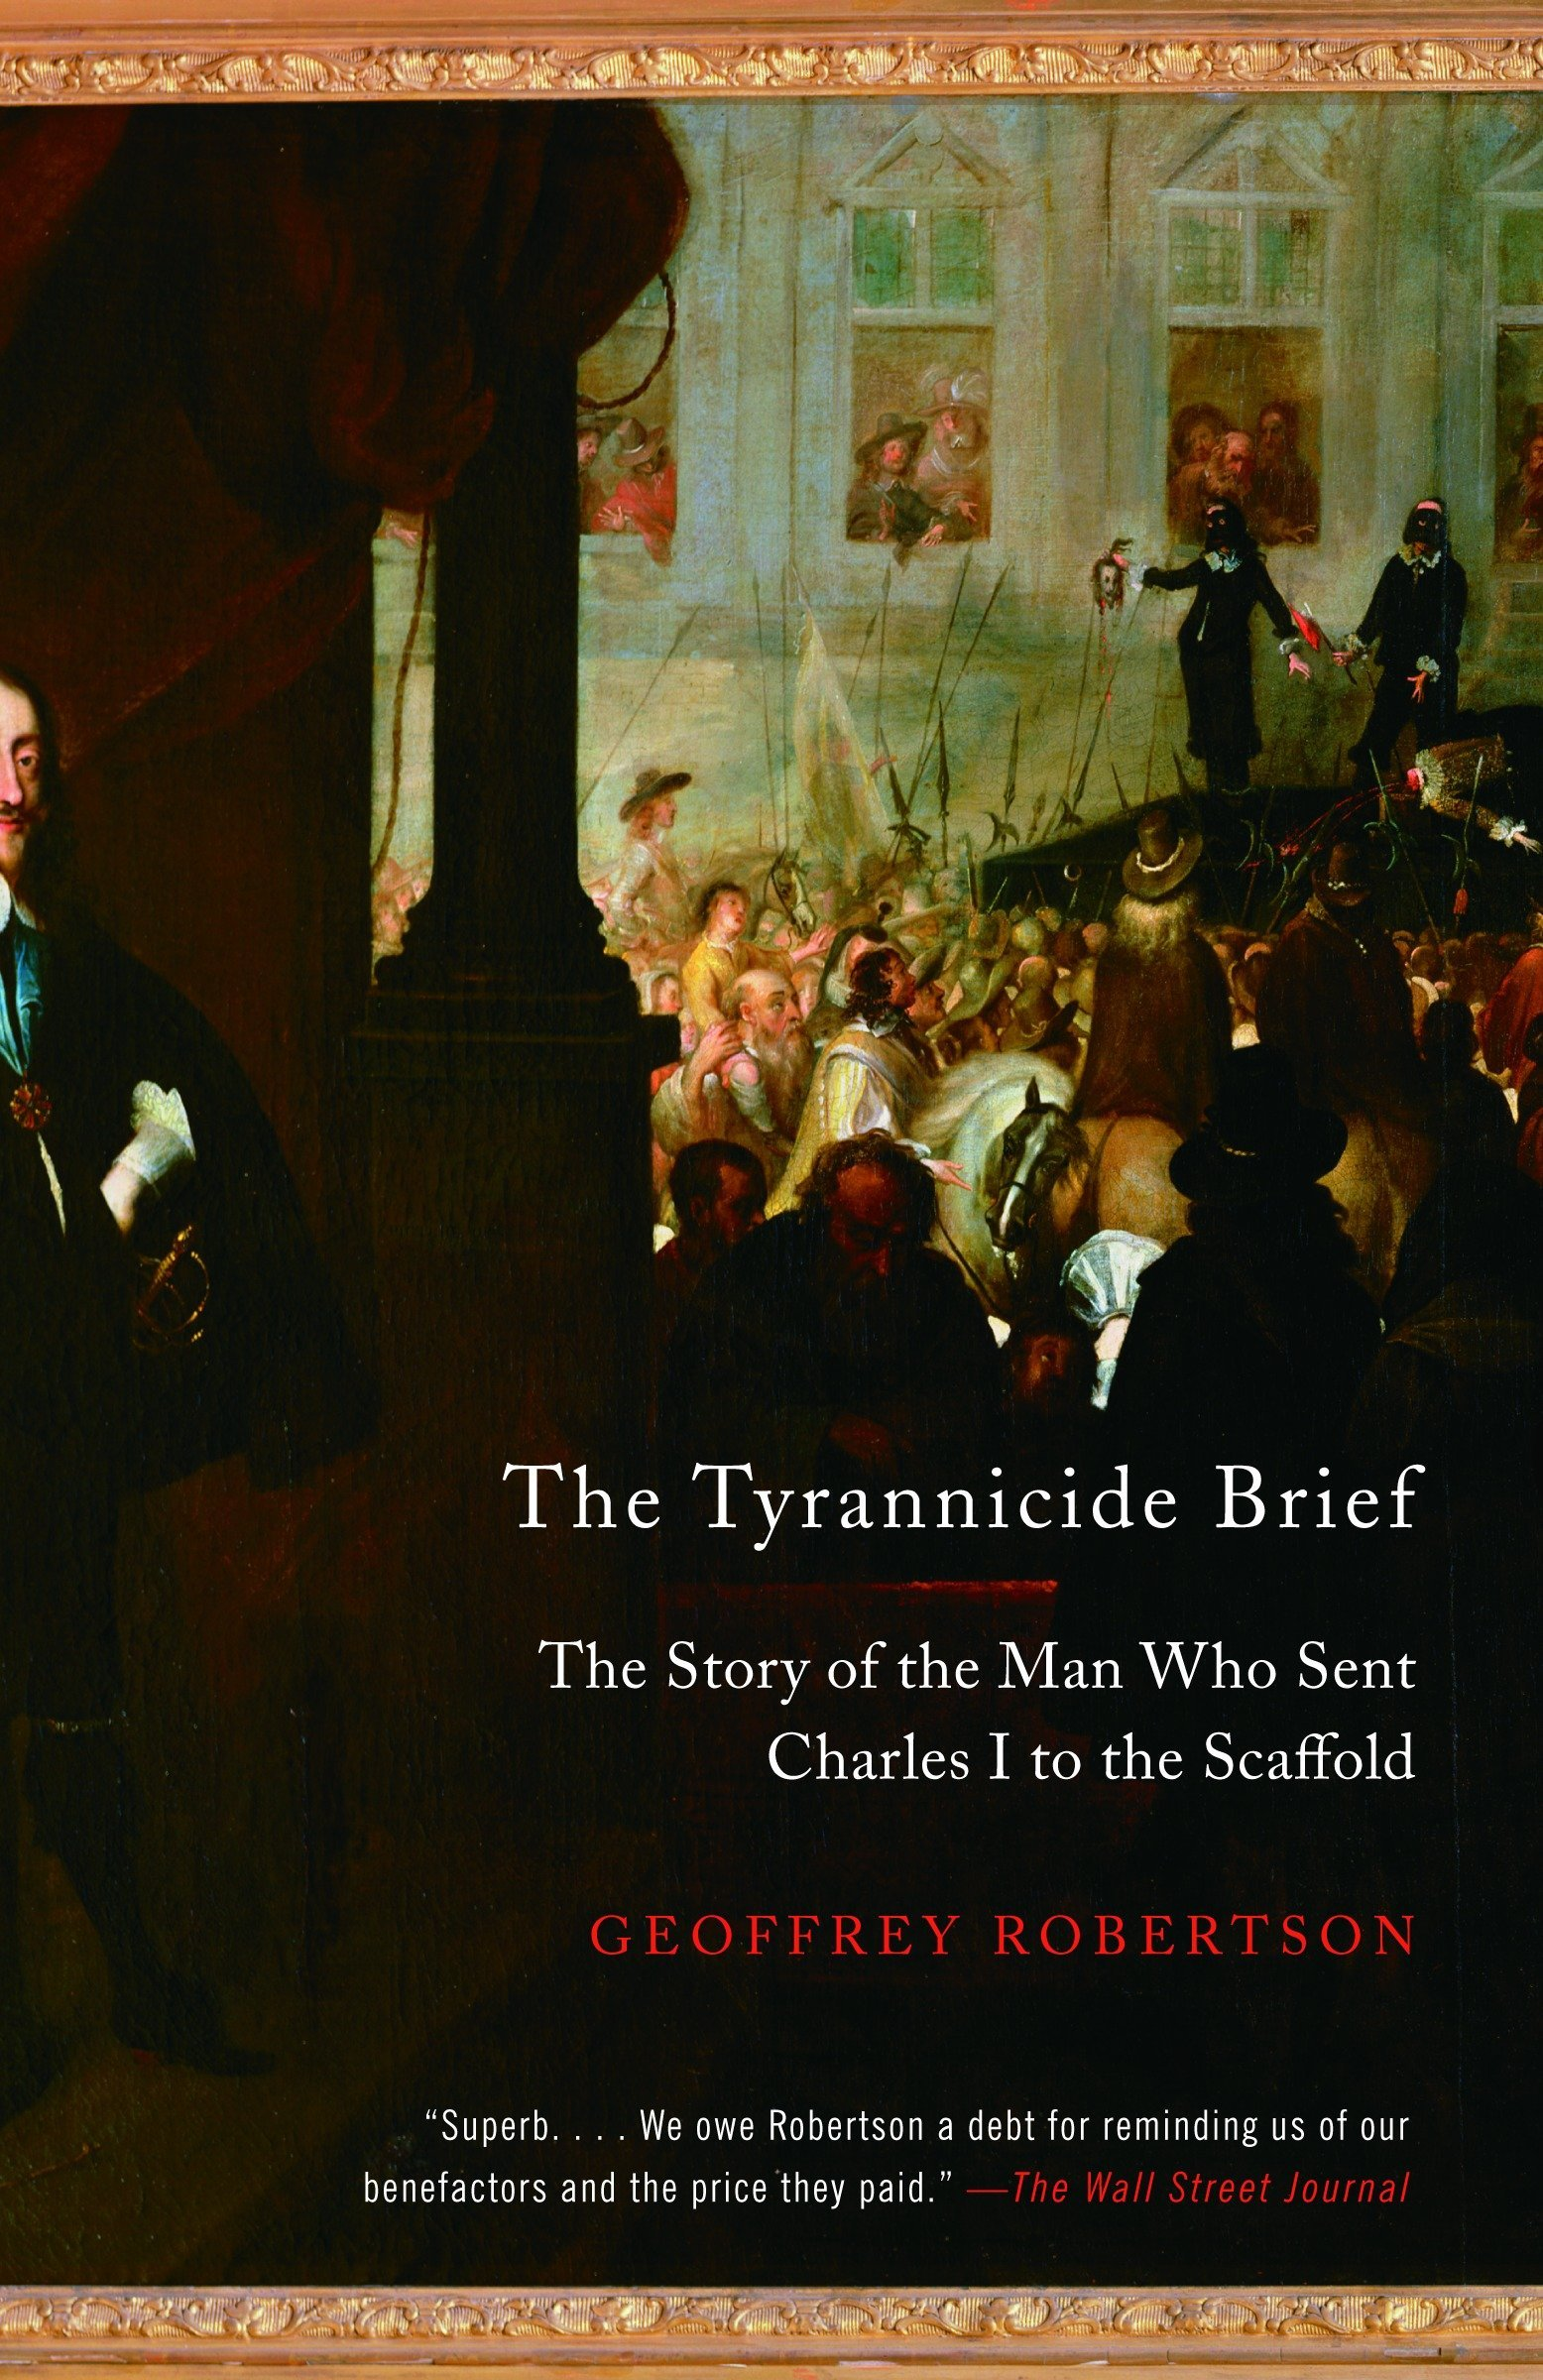 The Tyrannicide Brief: The Story of the Man Who Sent Charles I to the Scaffold: Amazon.es: Geoffrey Robertson: Libros en idiomas extranjeros